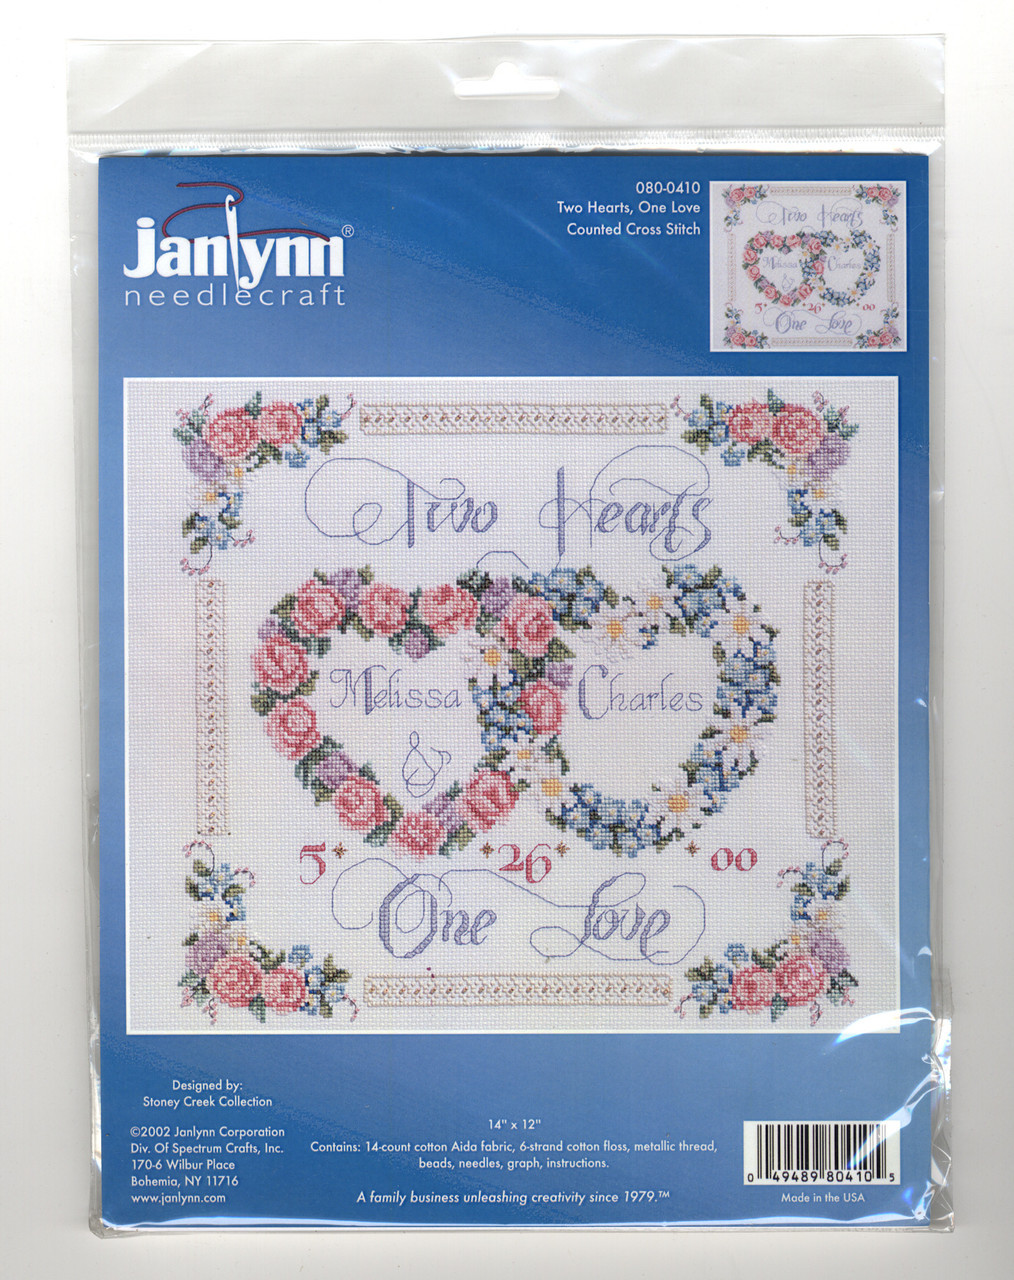 United Hearts Wedding Record Dimensions Needlecrafts Counted Cross Stitch